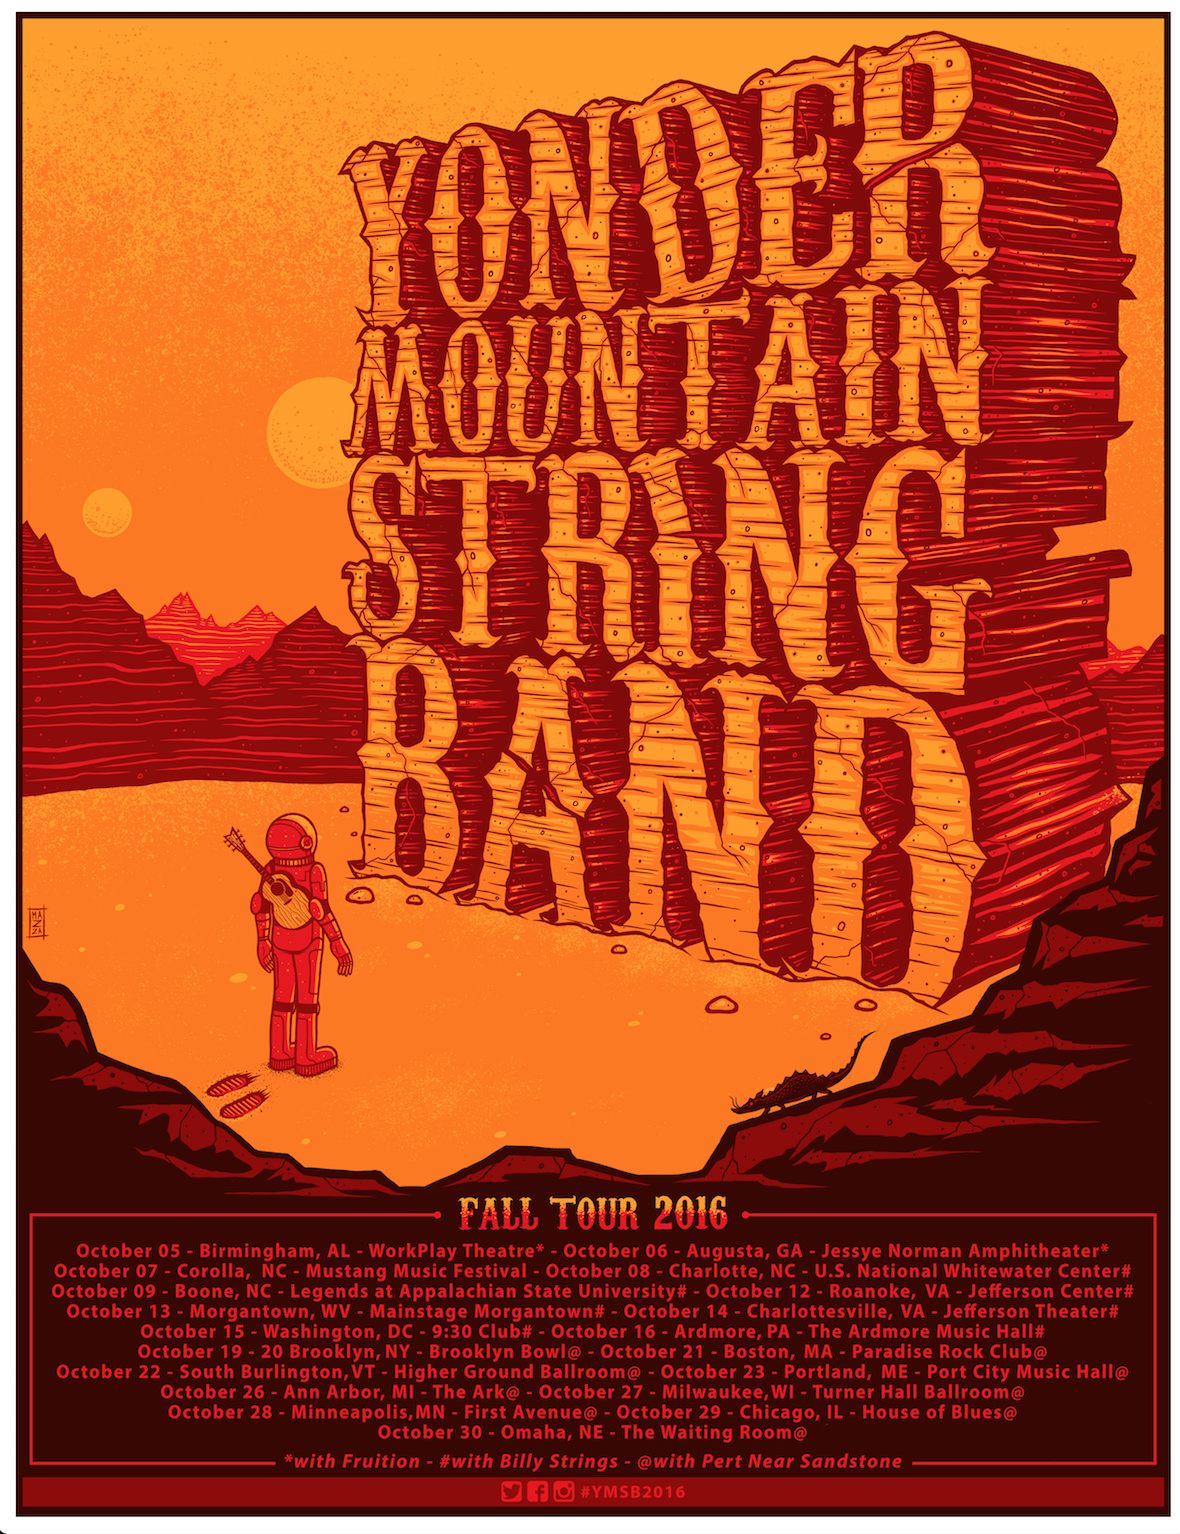 Yonder Mountain String Band Fall Tour 2016. Photo by: Yonder Mountain String Band